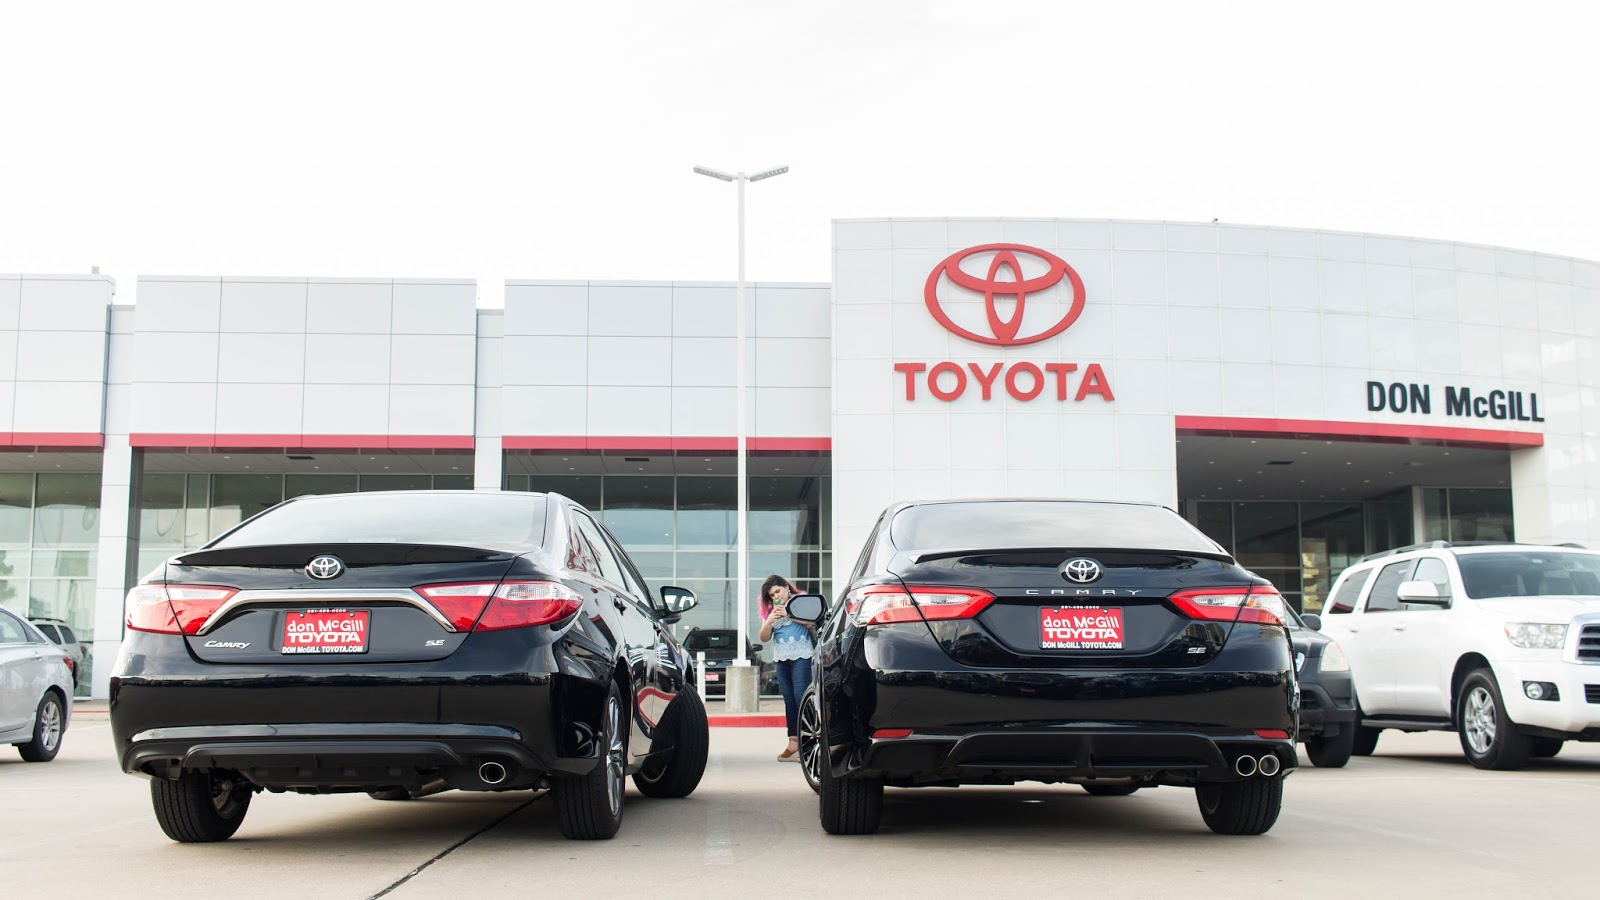 Don McGill Toyota Houston